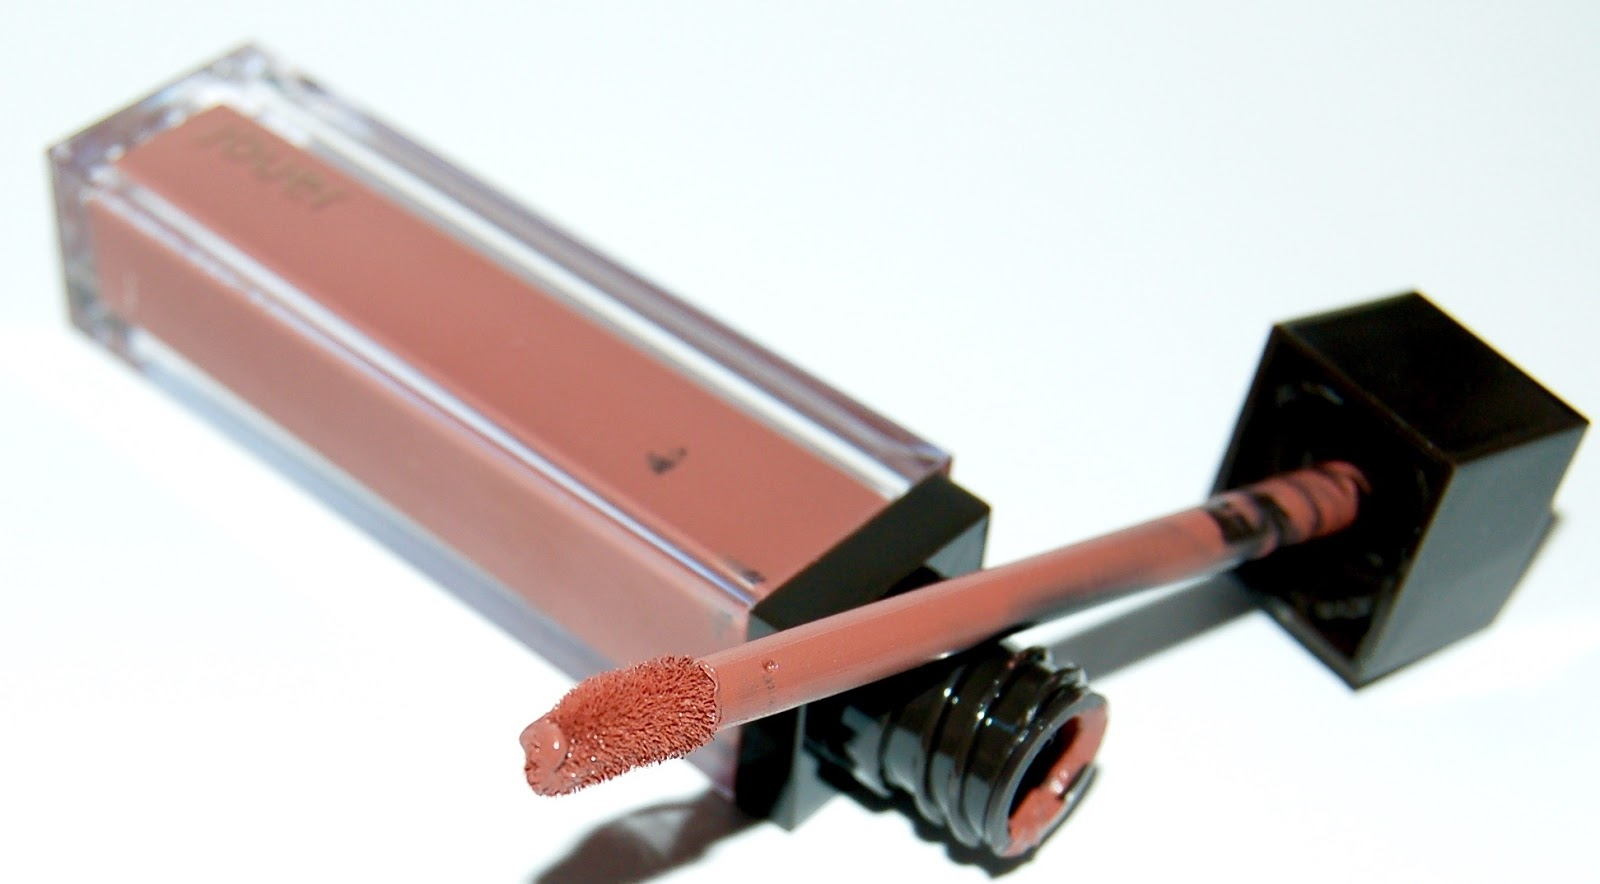 Jouer Liquid Lipsticks - Noisette